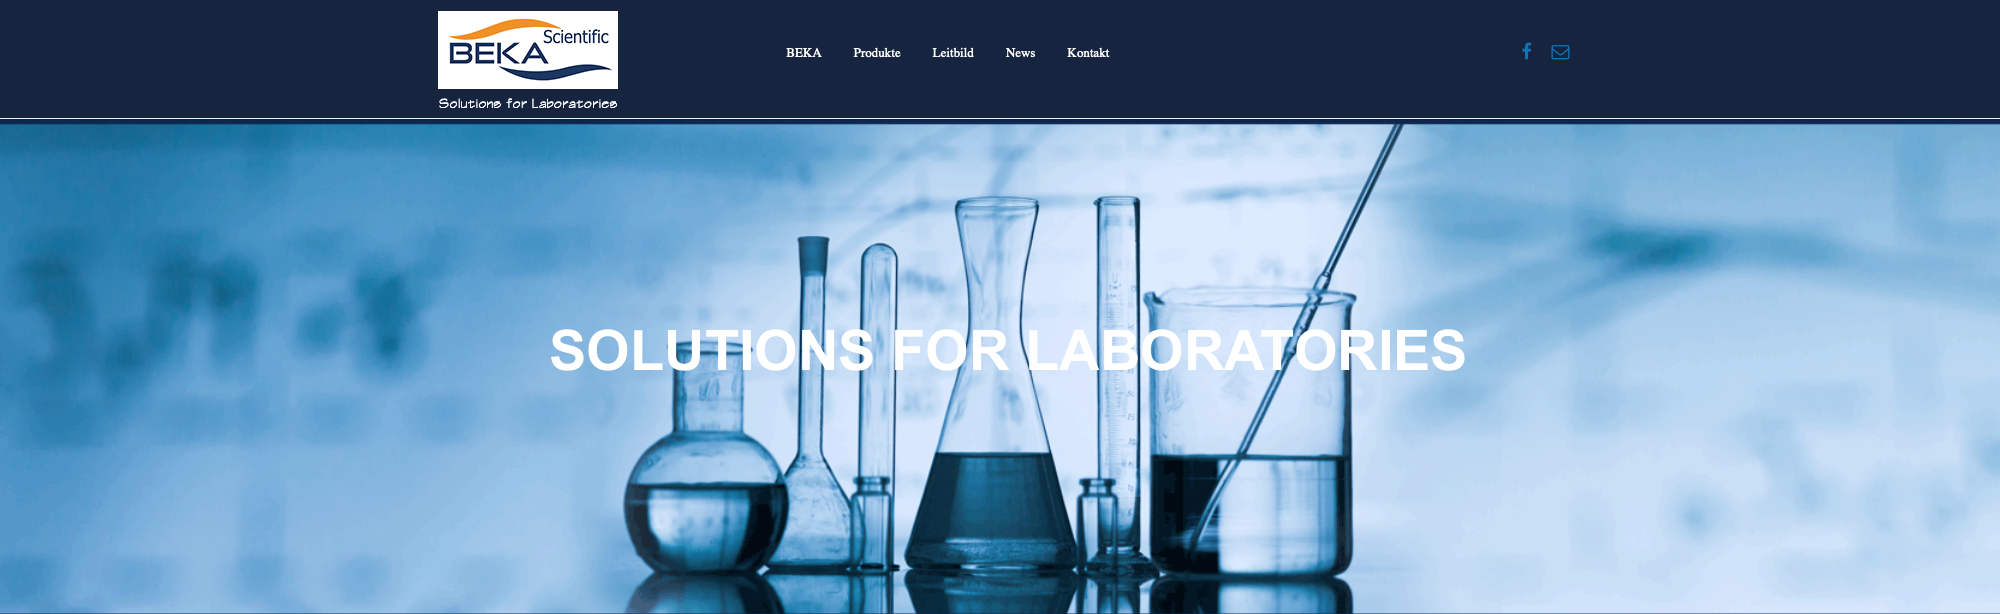 Webdesign von Beka-Scientific